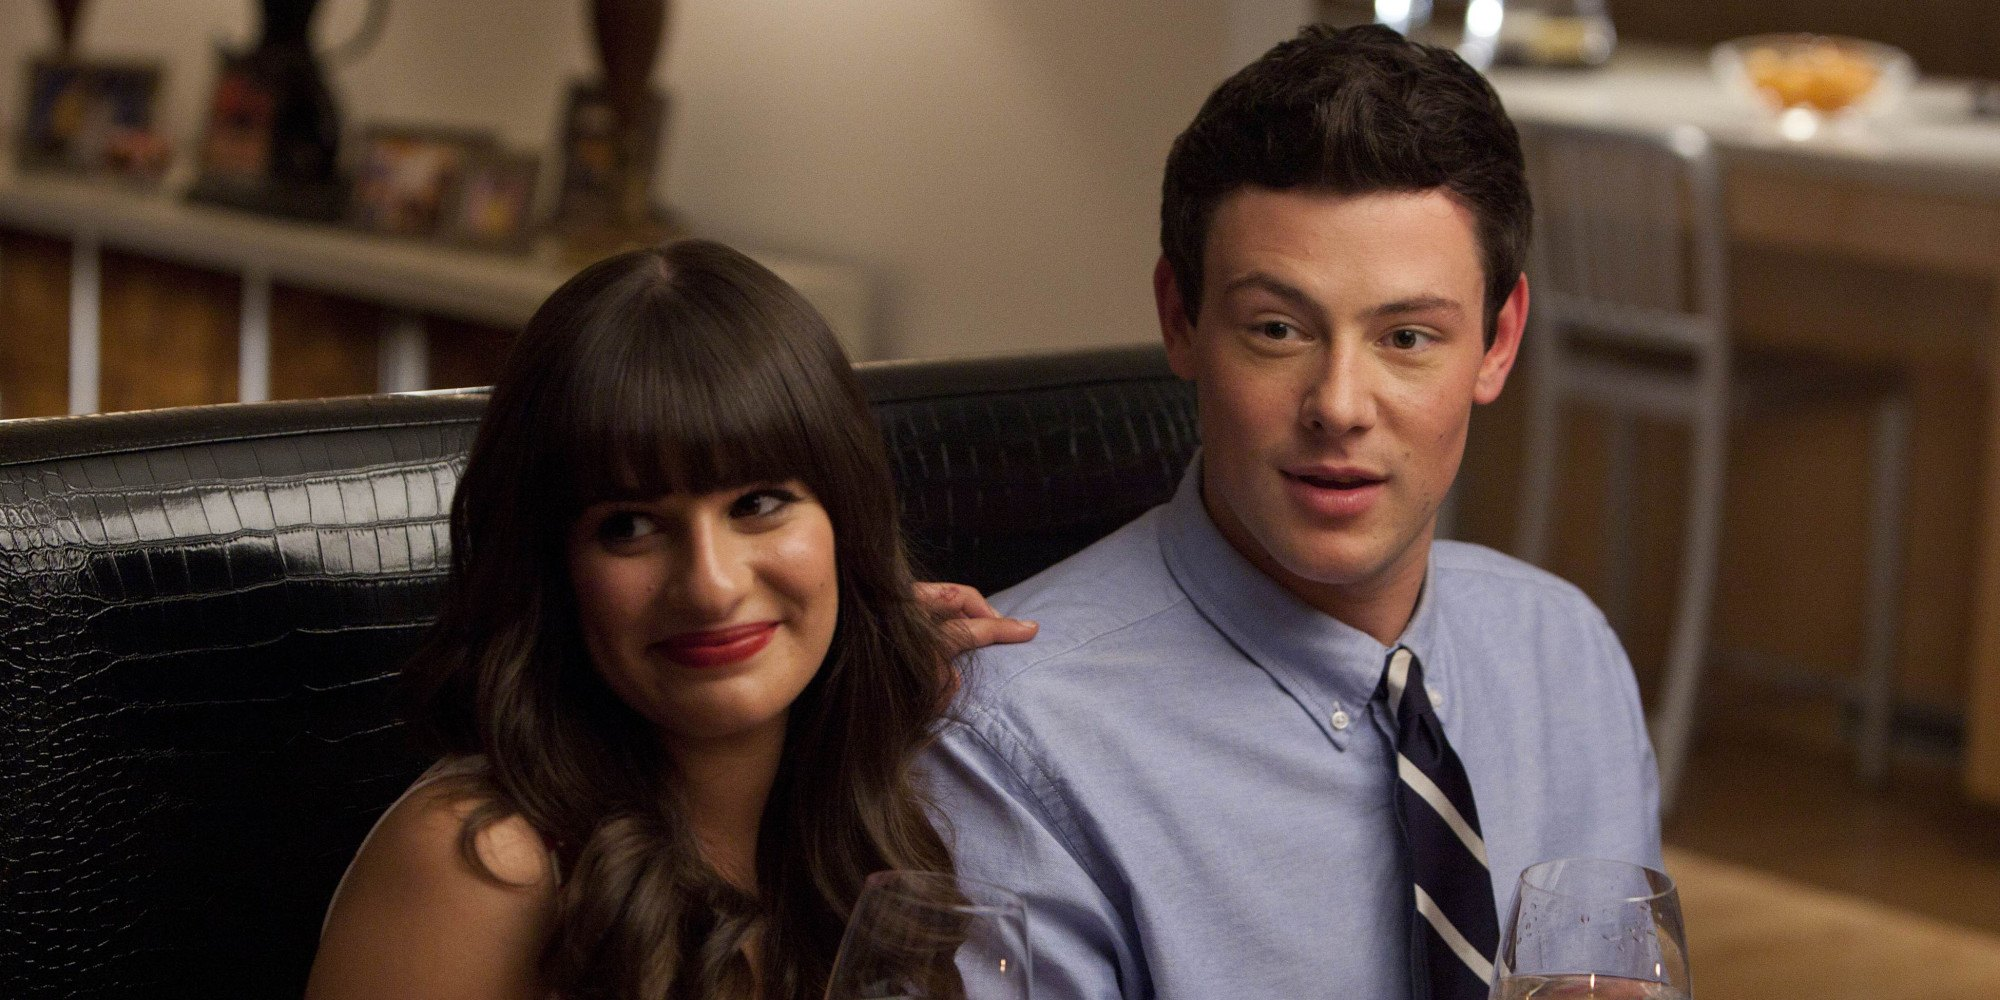 Lea Michele as Rachel Berry and Cory Monteith as Finn Hudson on Glee